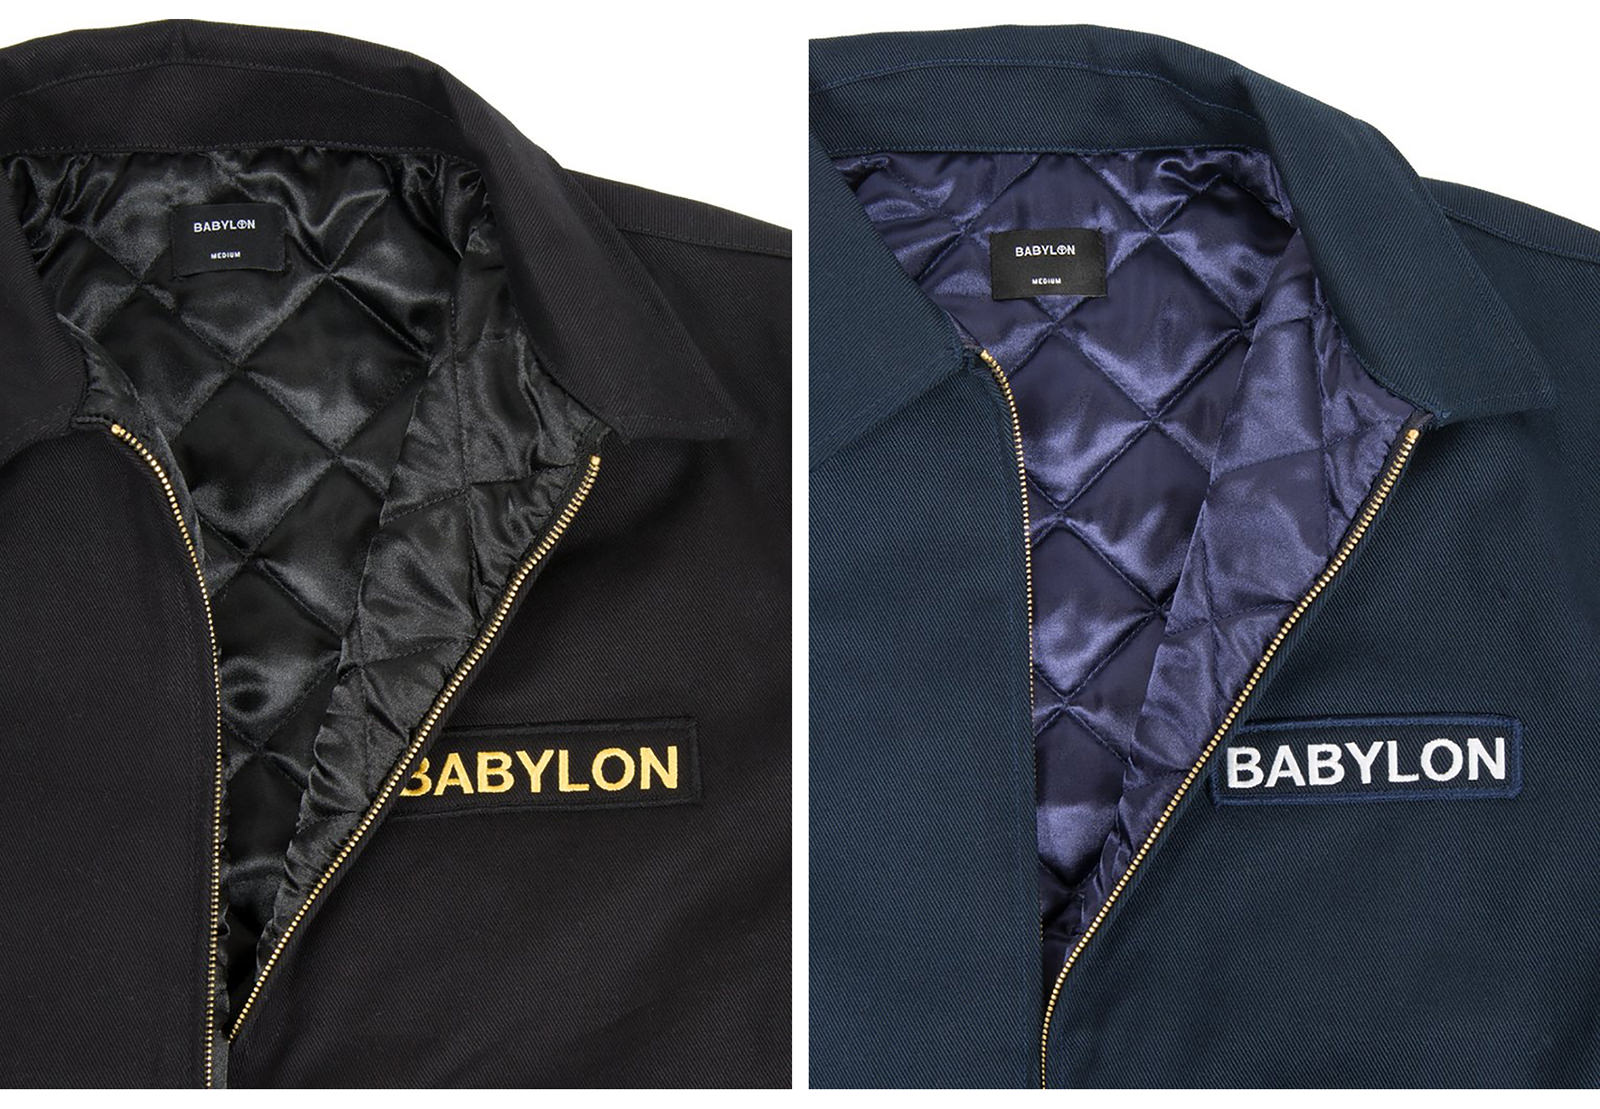 582d3c90c34982e54bfc5cdc_babylon-under-fire-jacket-13